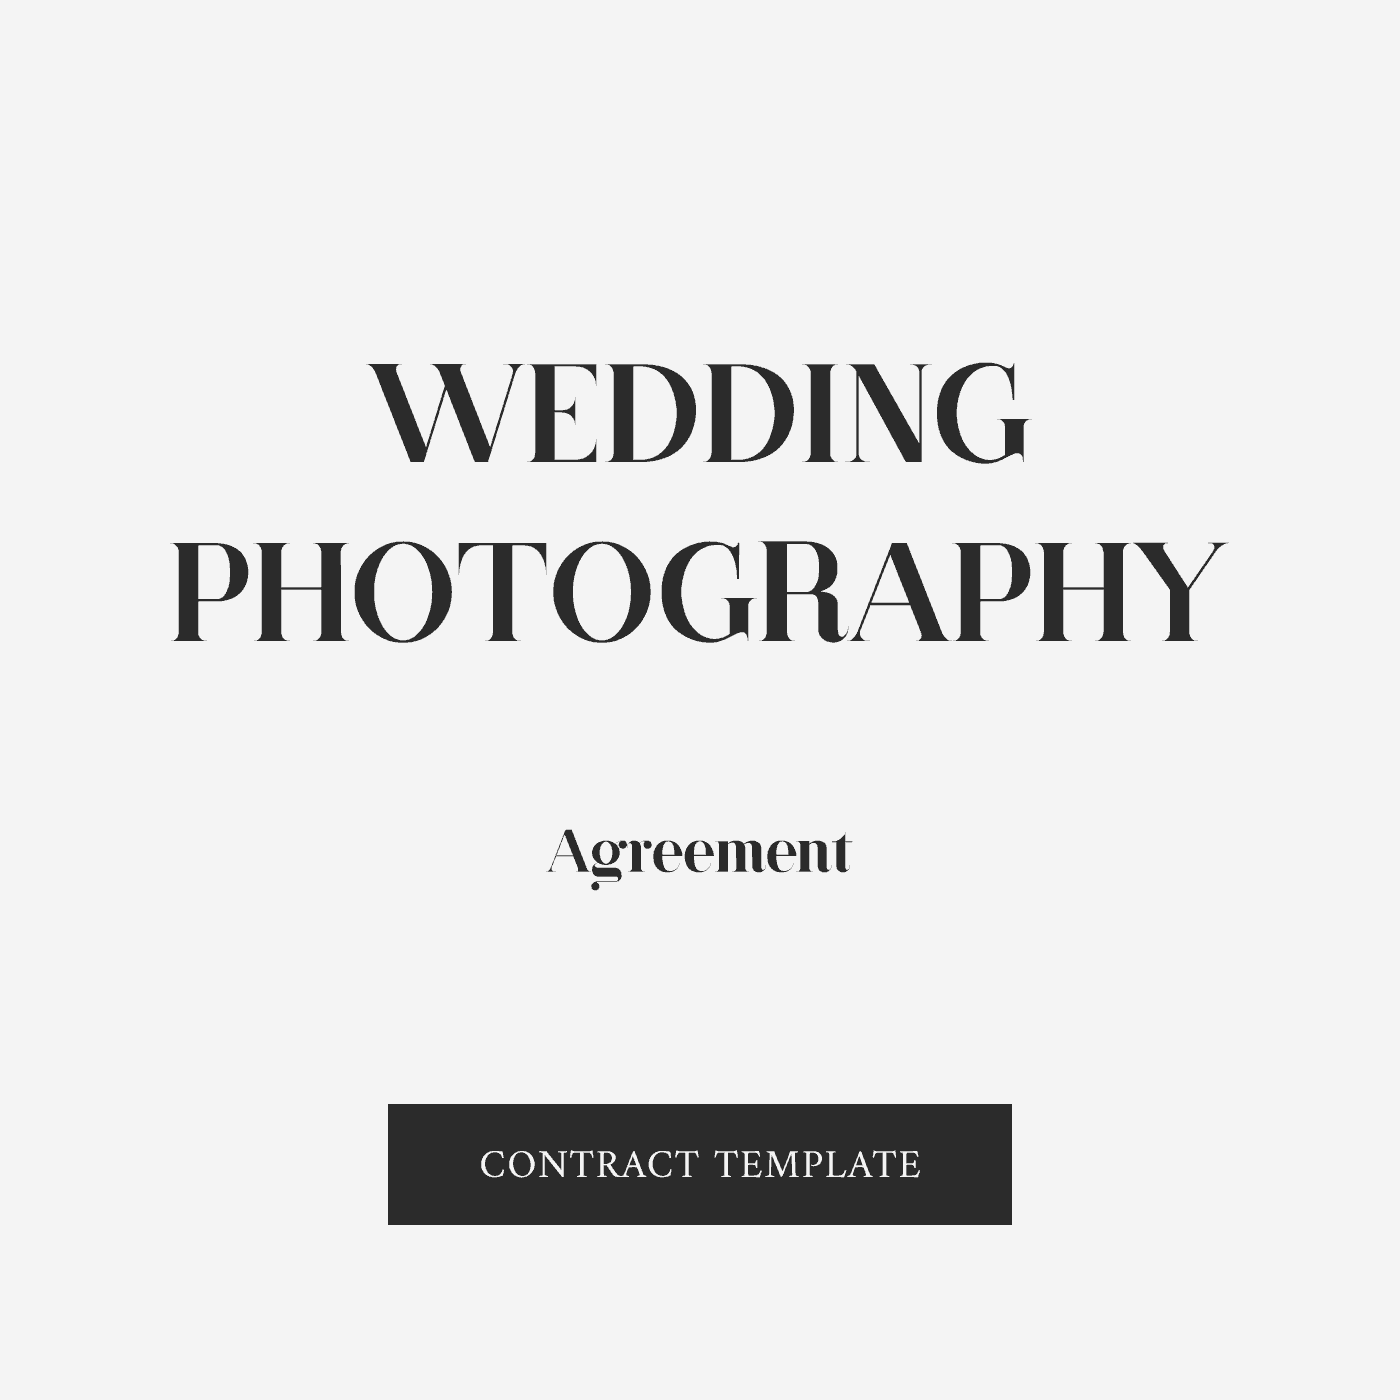 Wedding Photography Agreement Template Zara Watson Law